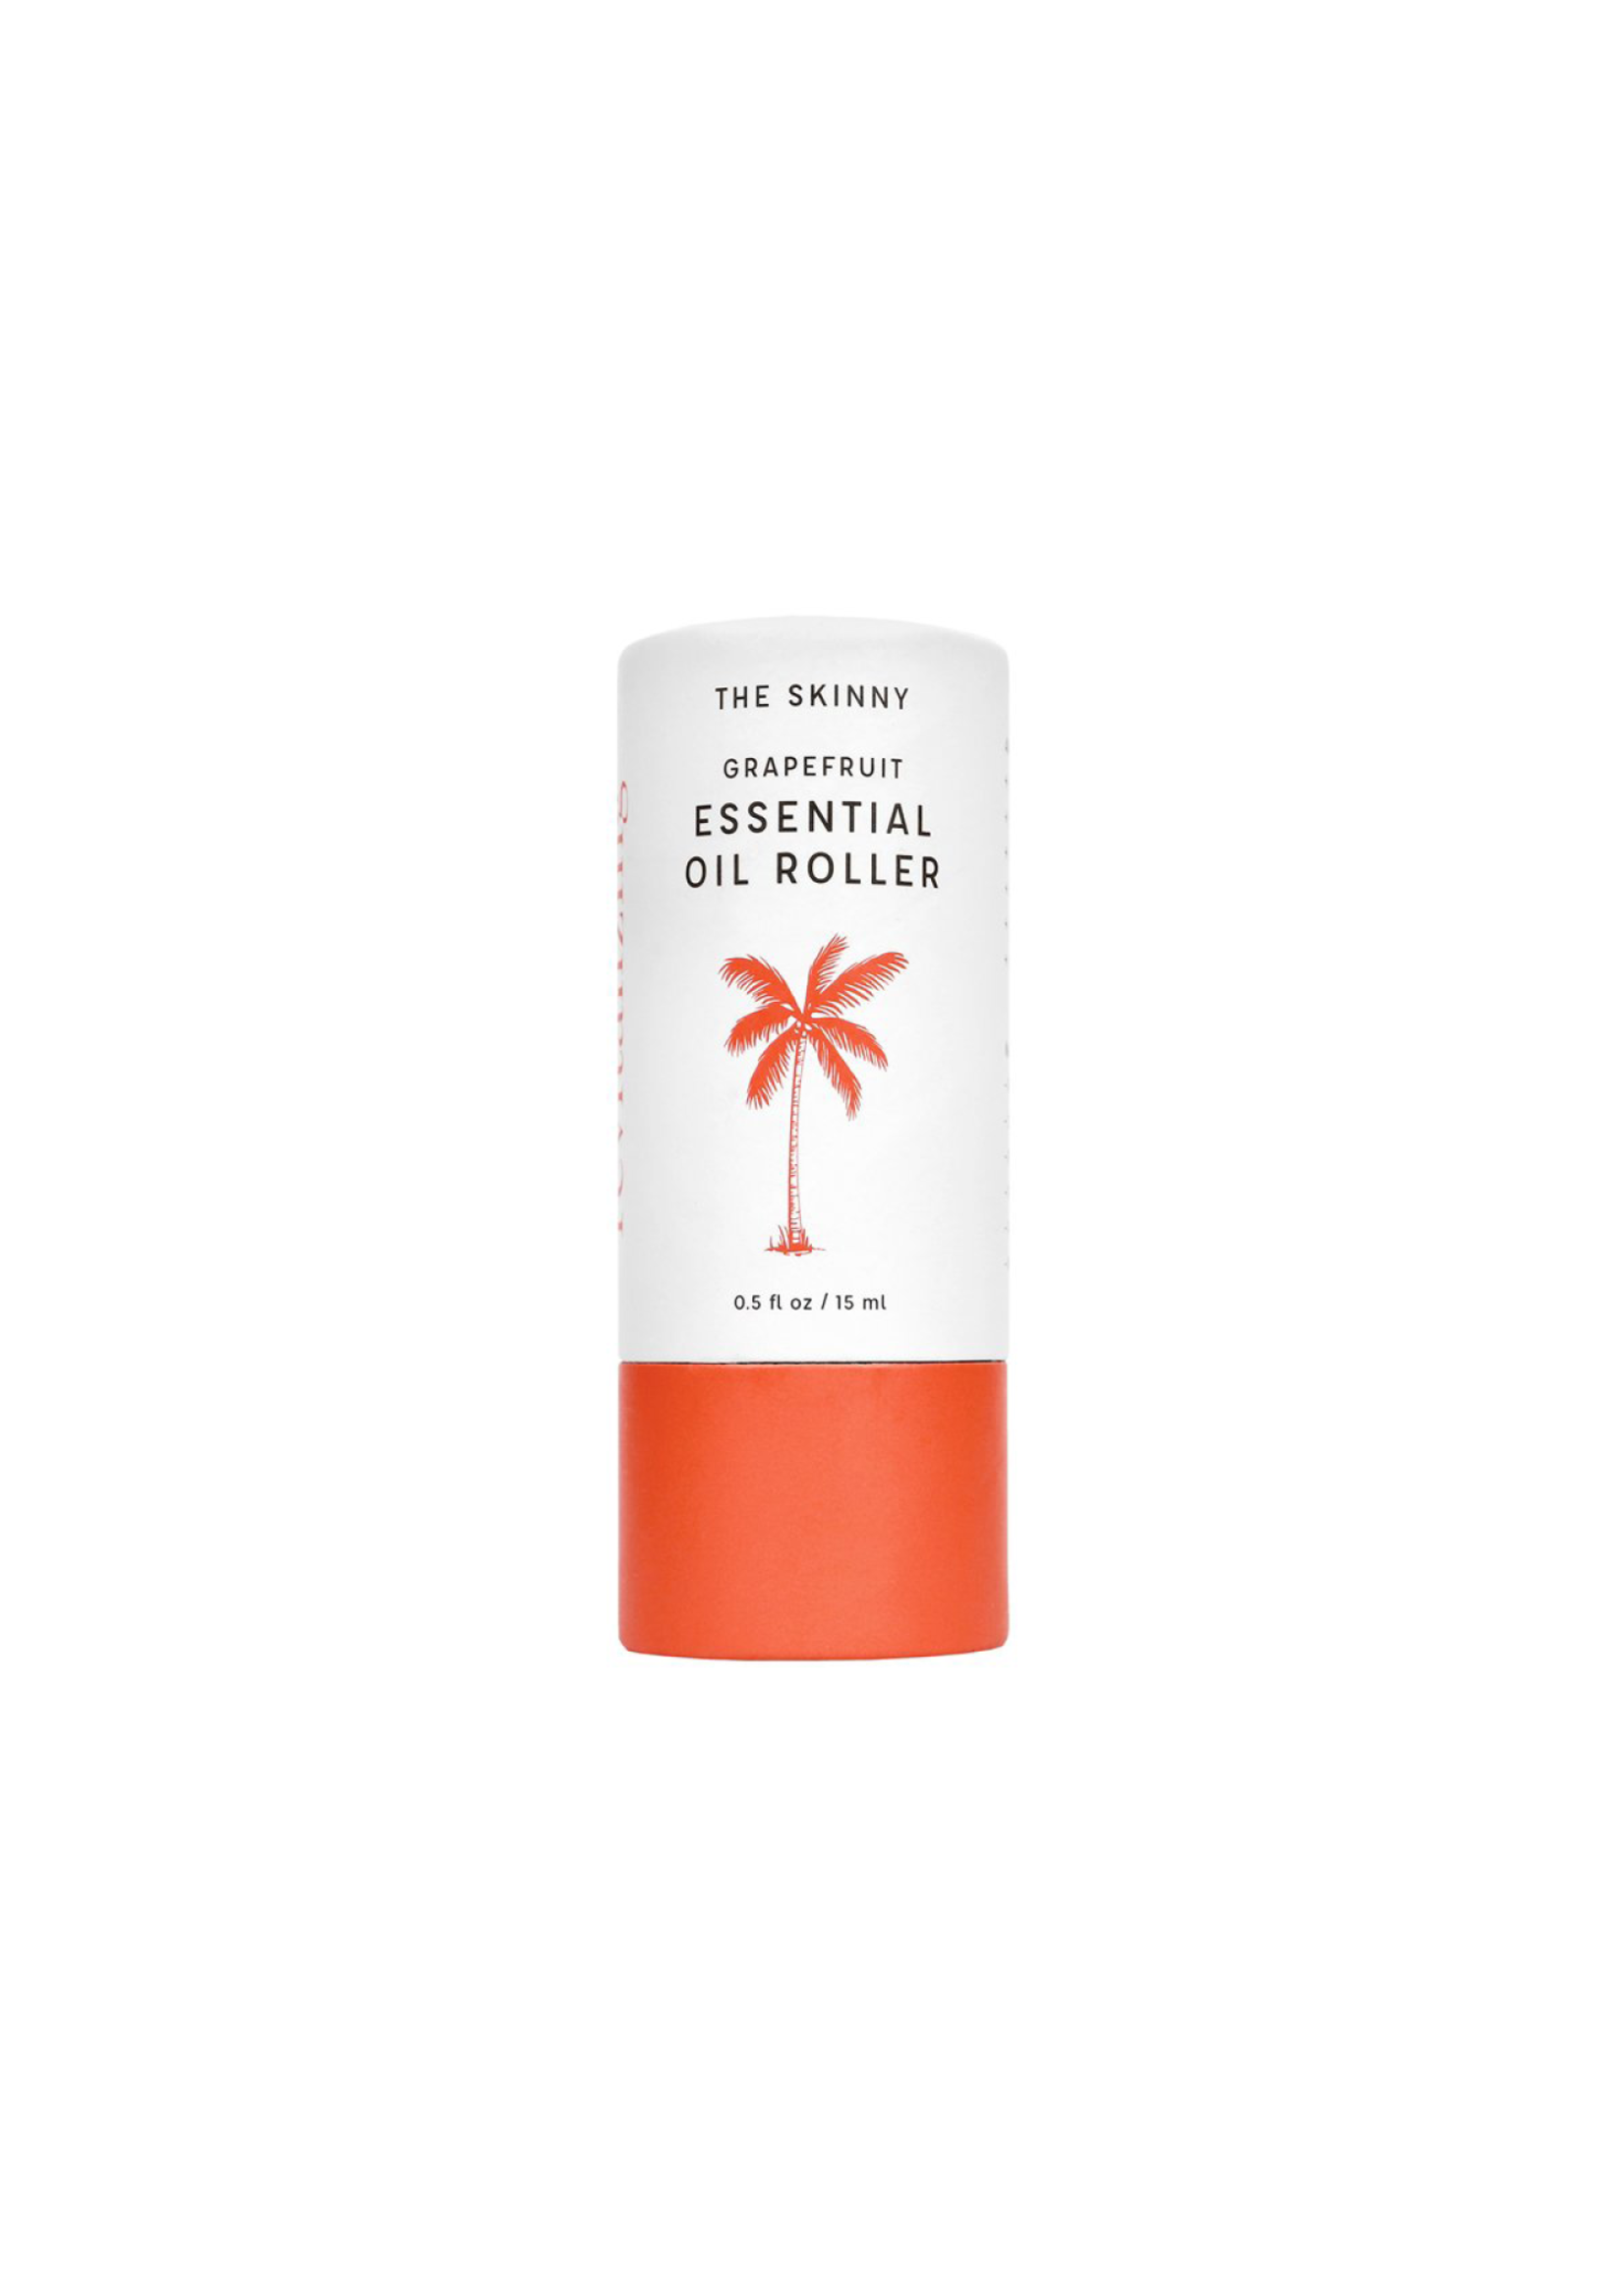 The Skinny Essential Oil Rollers